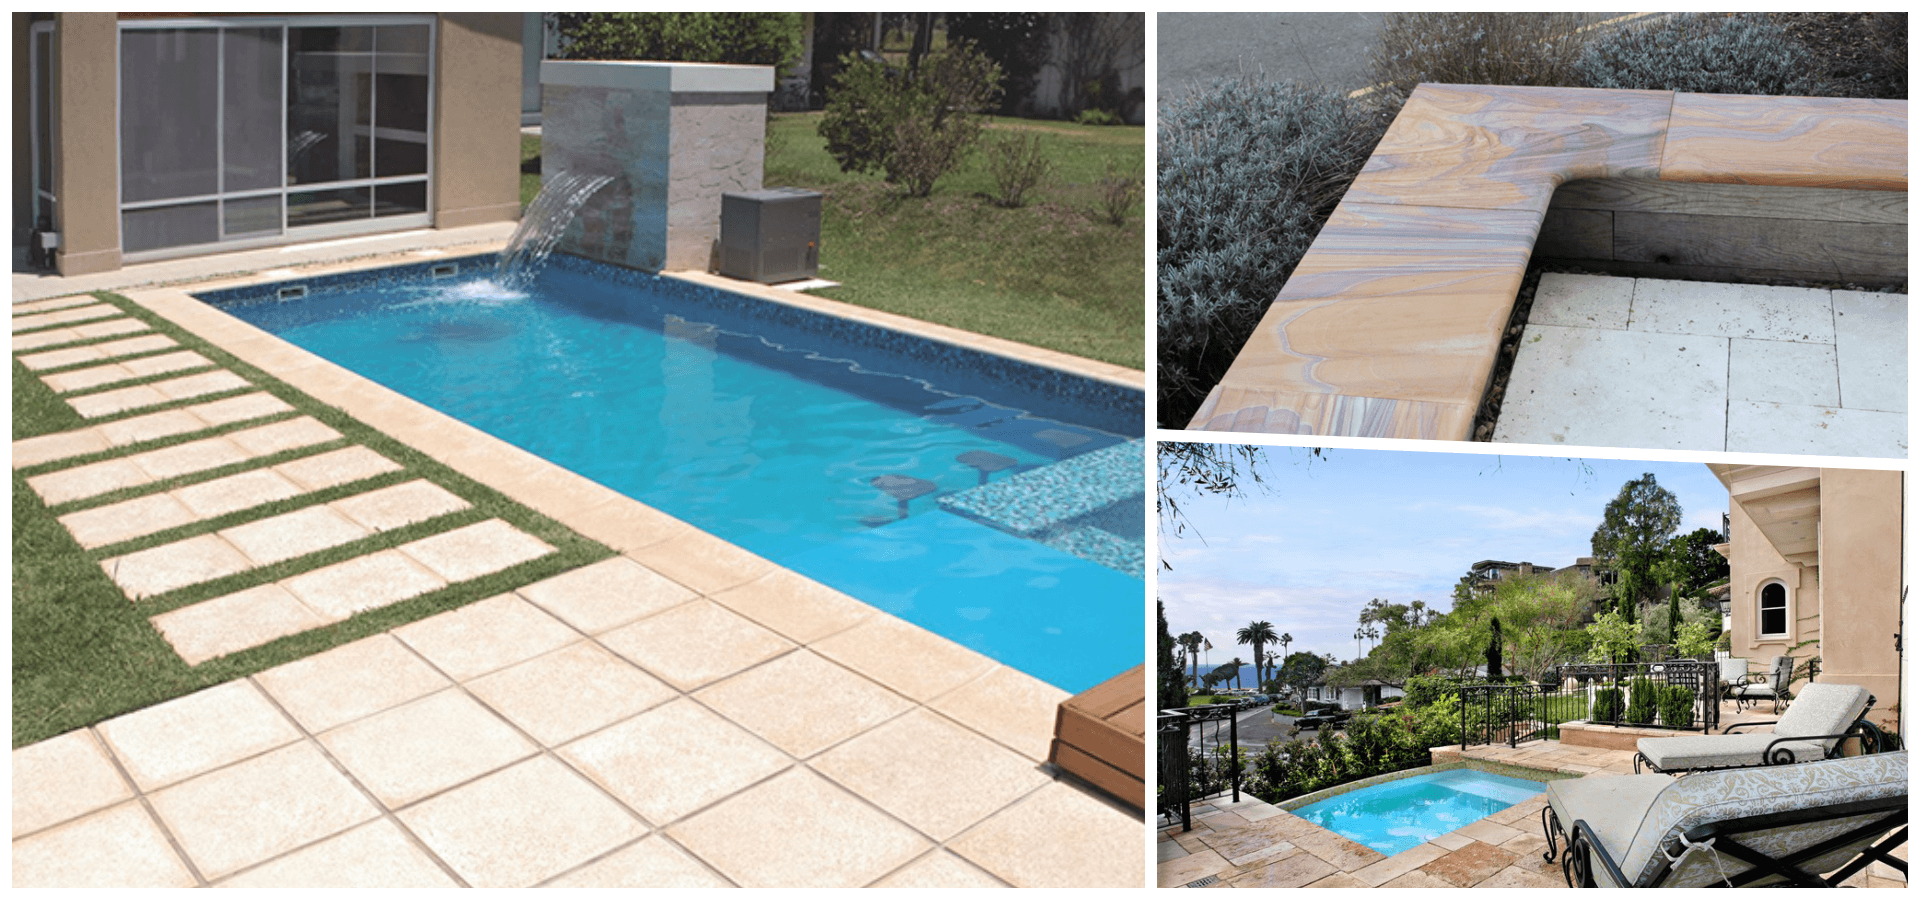 Pool coping Manufacturer Supplier Exporter Rachana Stones India